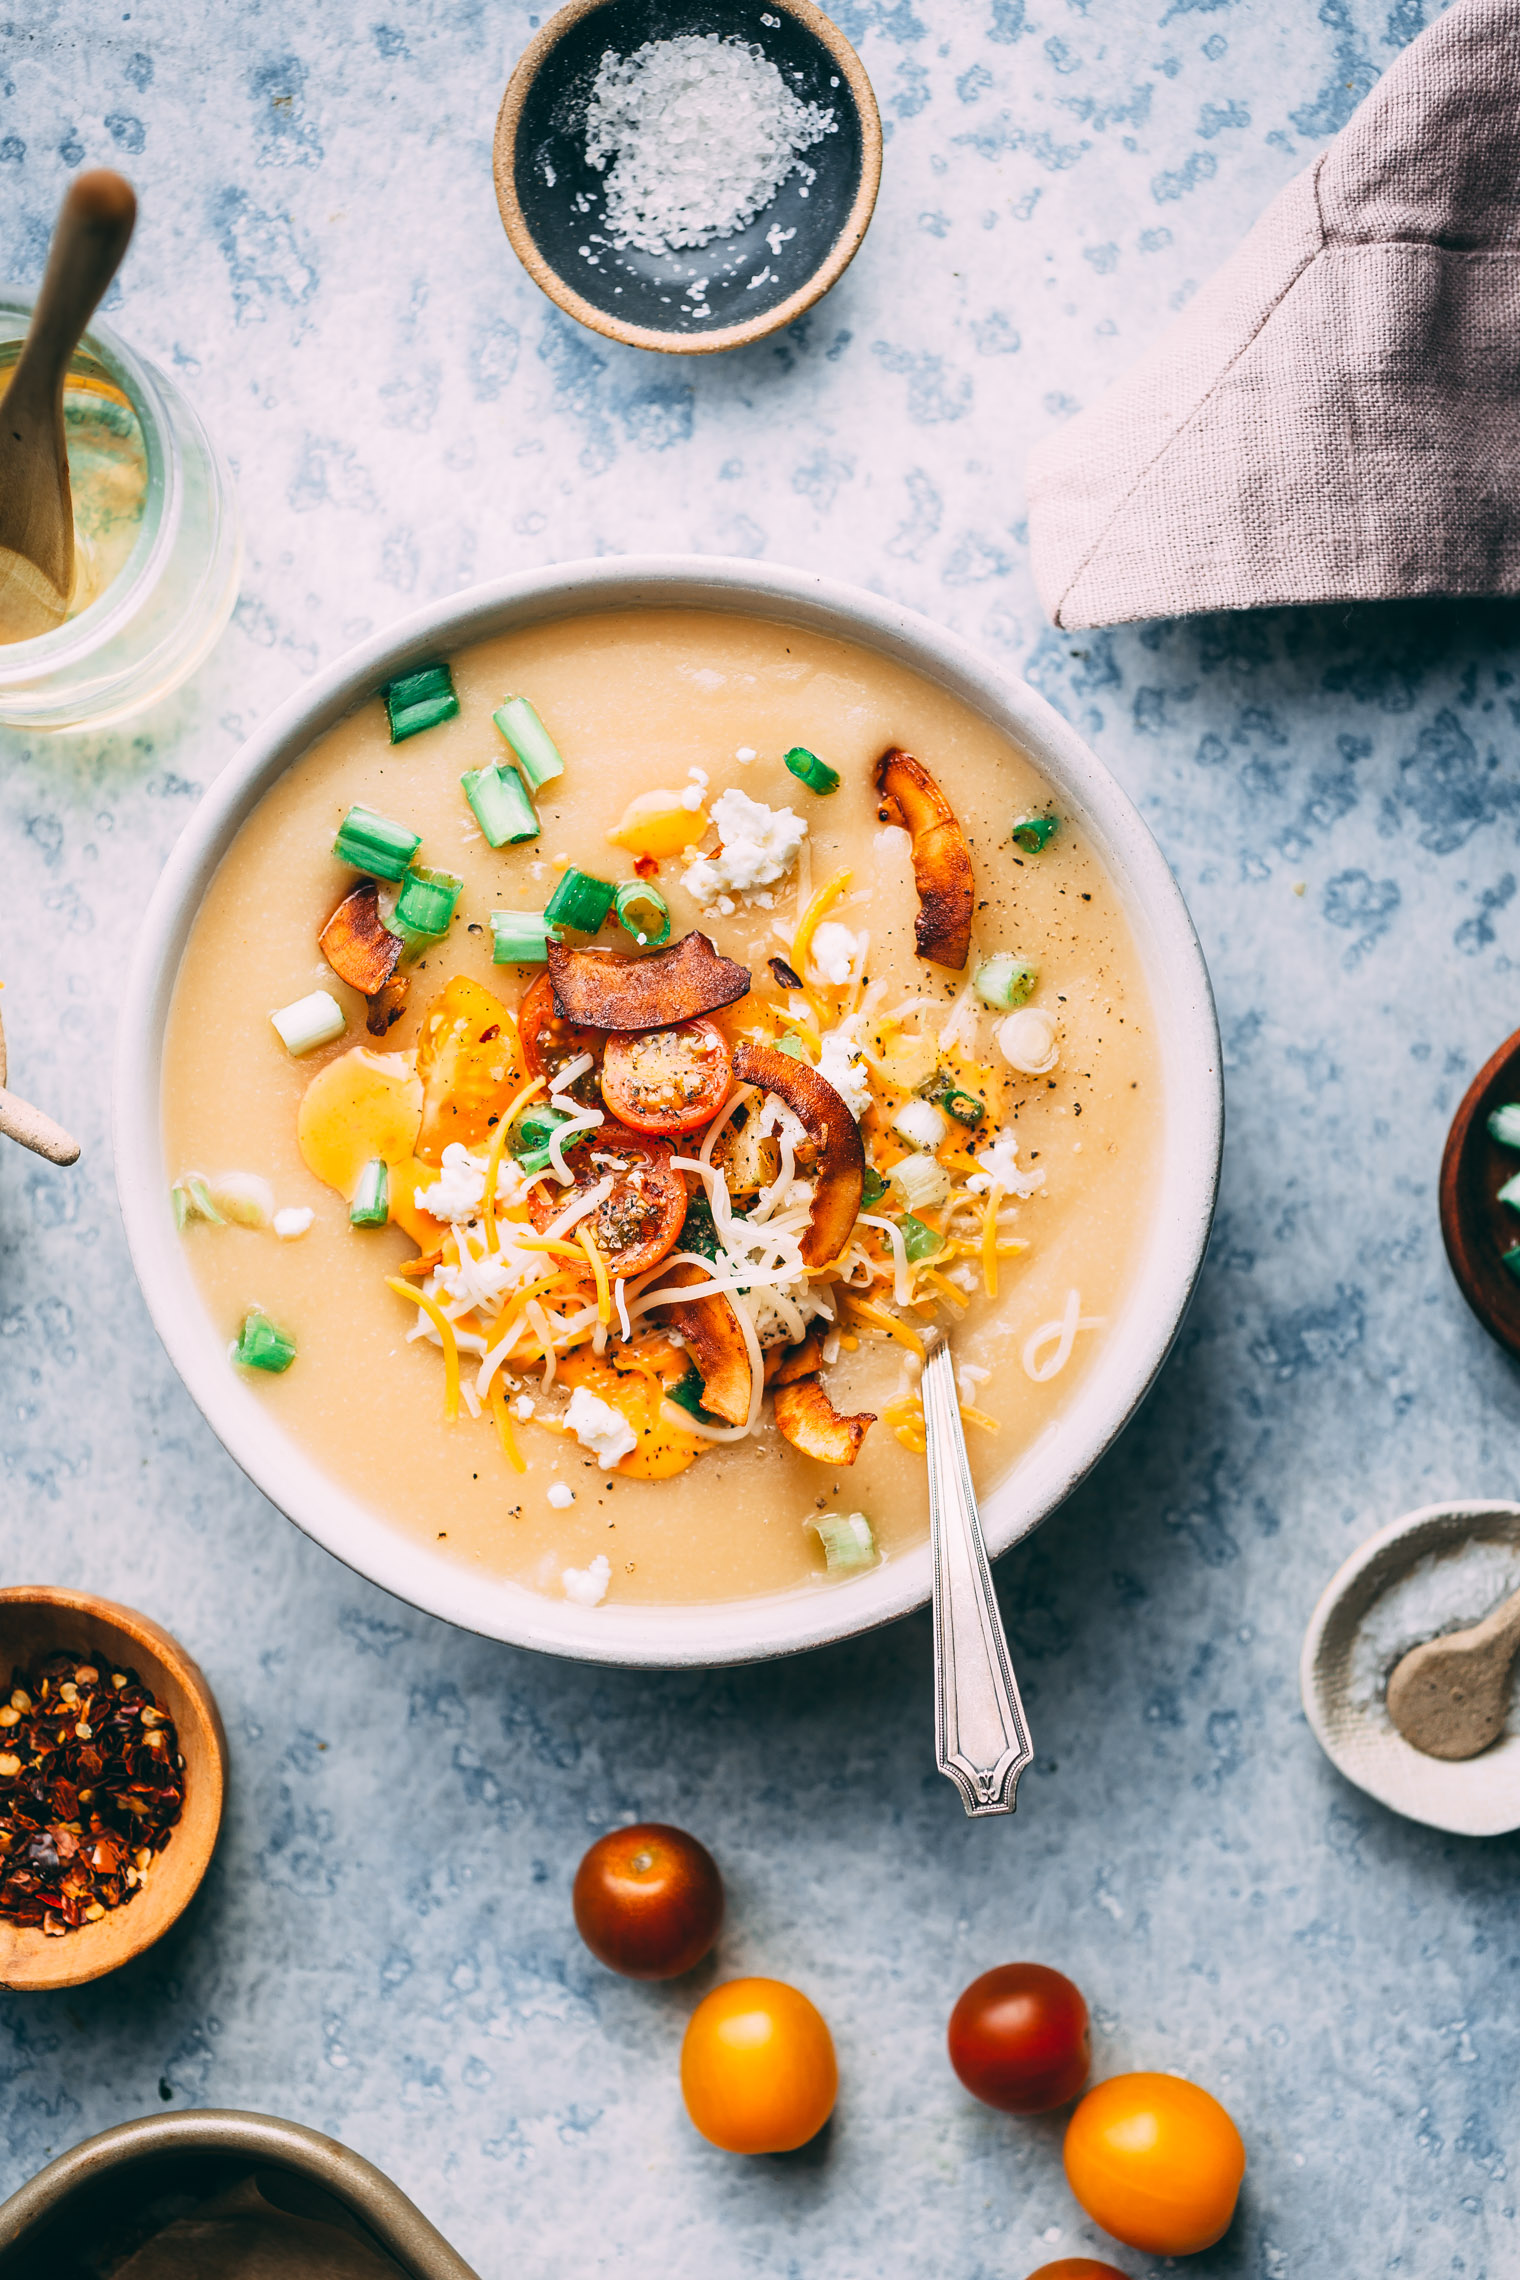 10 Vegetarian Soup Recipes To Get You Excited For Cooler Weather